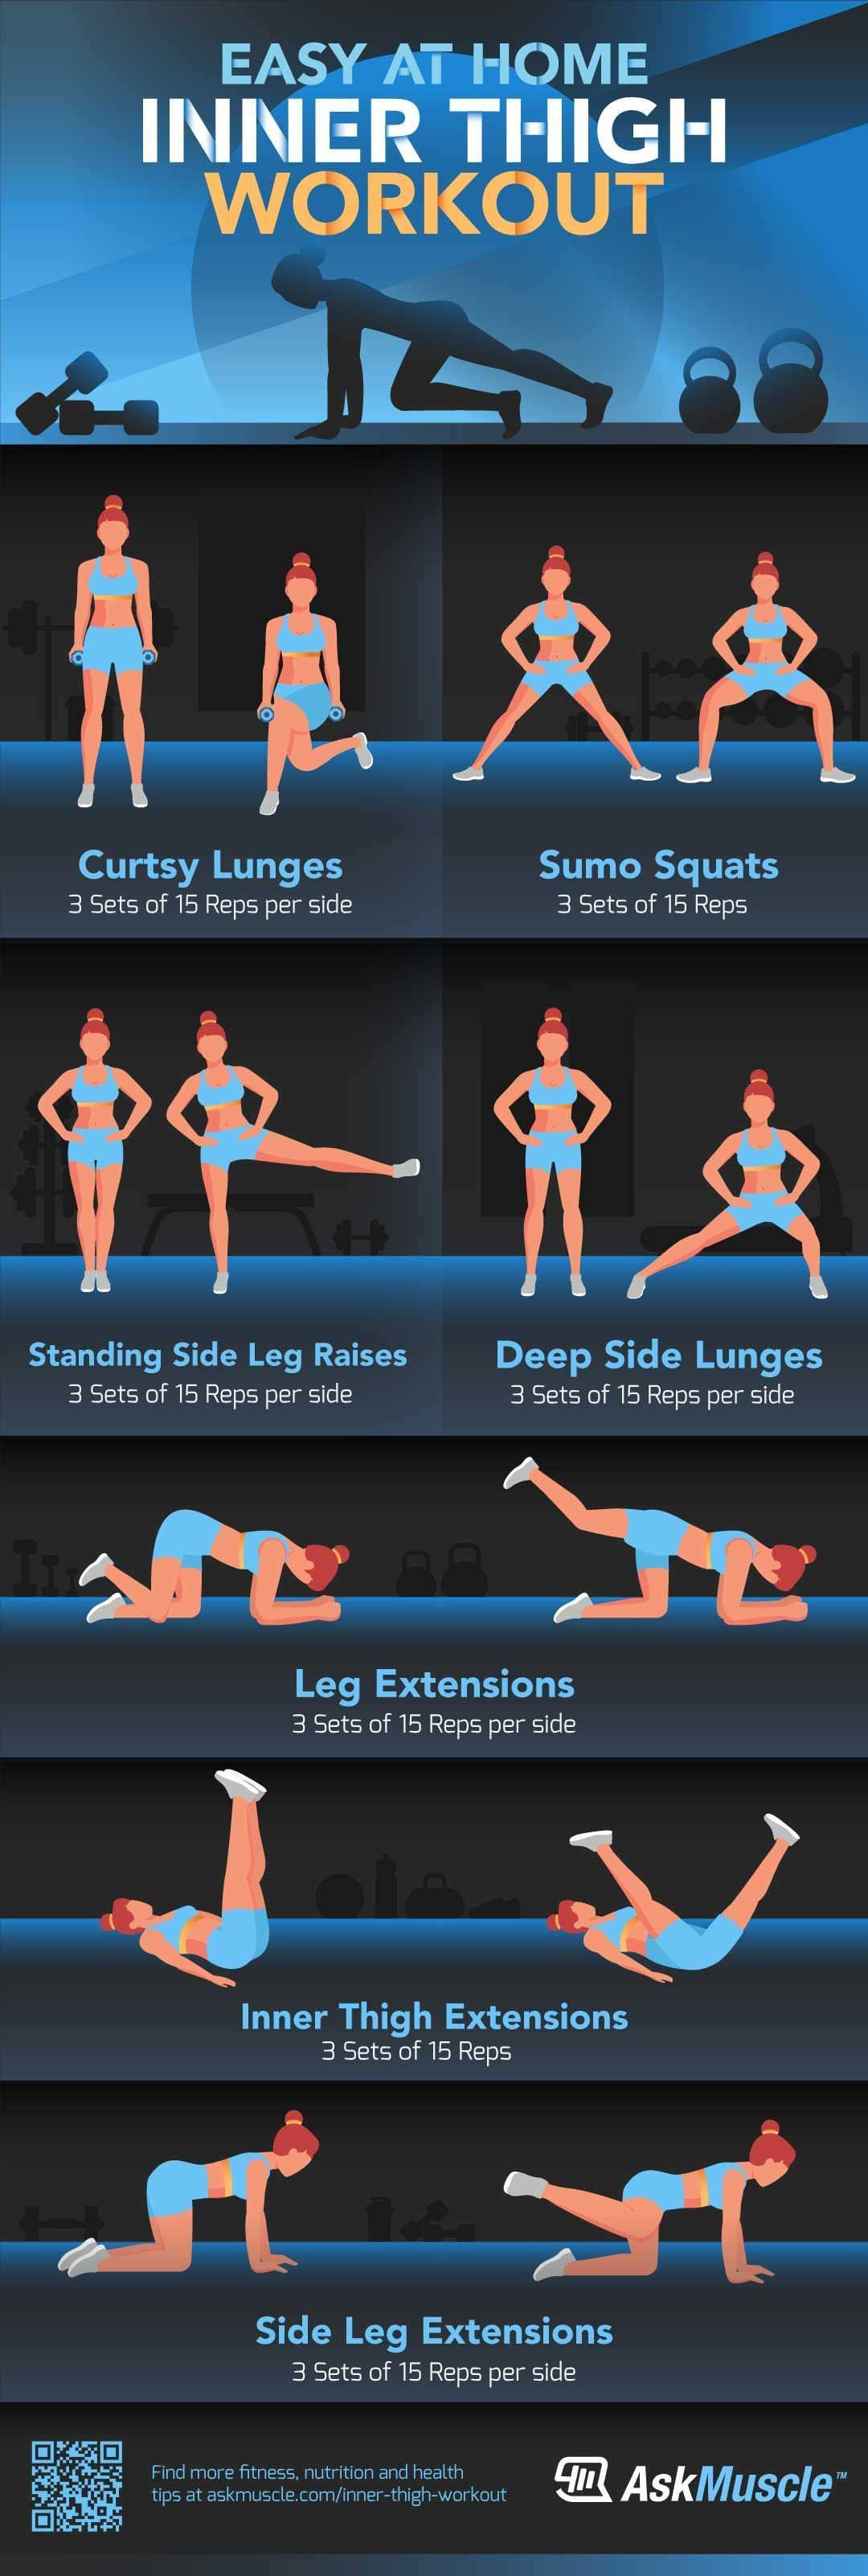 The Best Inner Thigh Workout Routine to Do at Home in 2020 ...